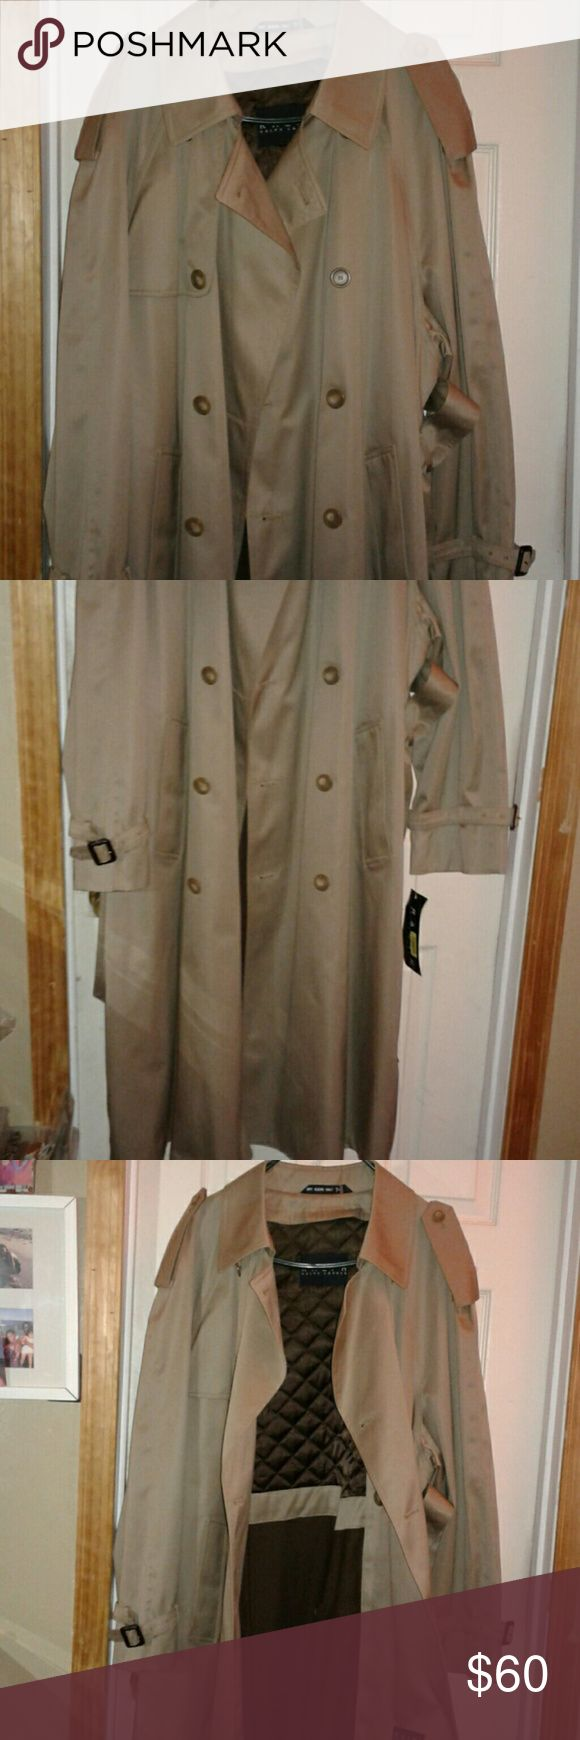 Mens Ralph Lauren Linned Trench Coat Size 44 R New New With Tags. Great Last minute gift. Ready to ship. Purchased from Dillards. Has a zip out lining. Size 44 Regular. Ralph Lauren Jackets & Coats Trench Coats